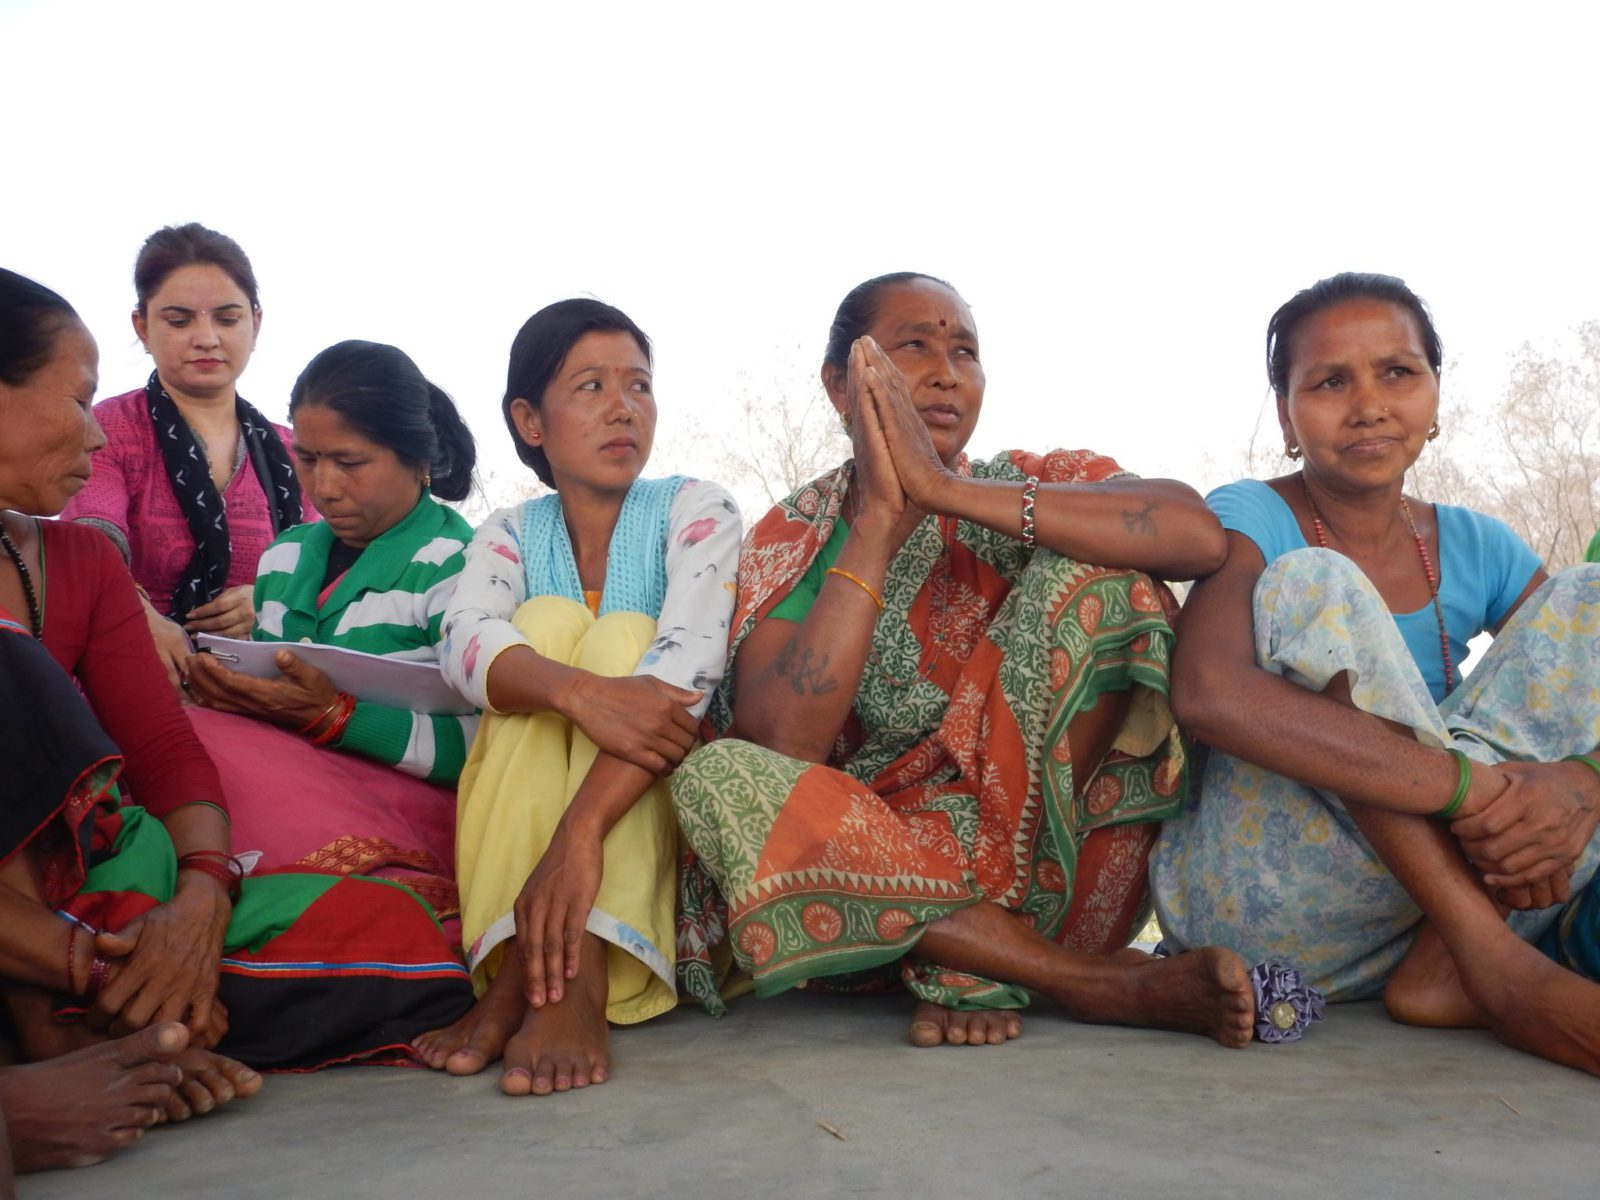 Nepal pace donne 3